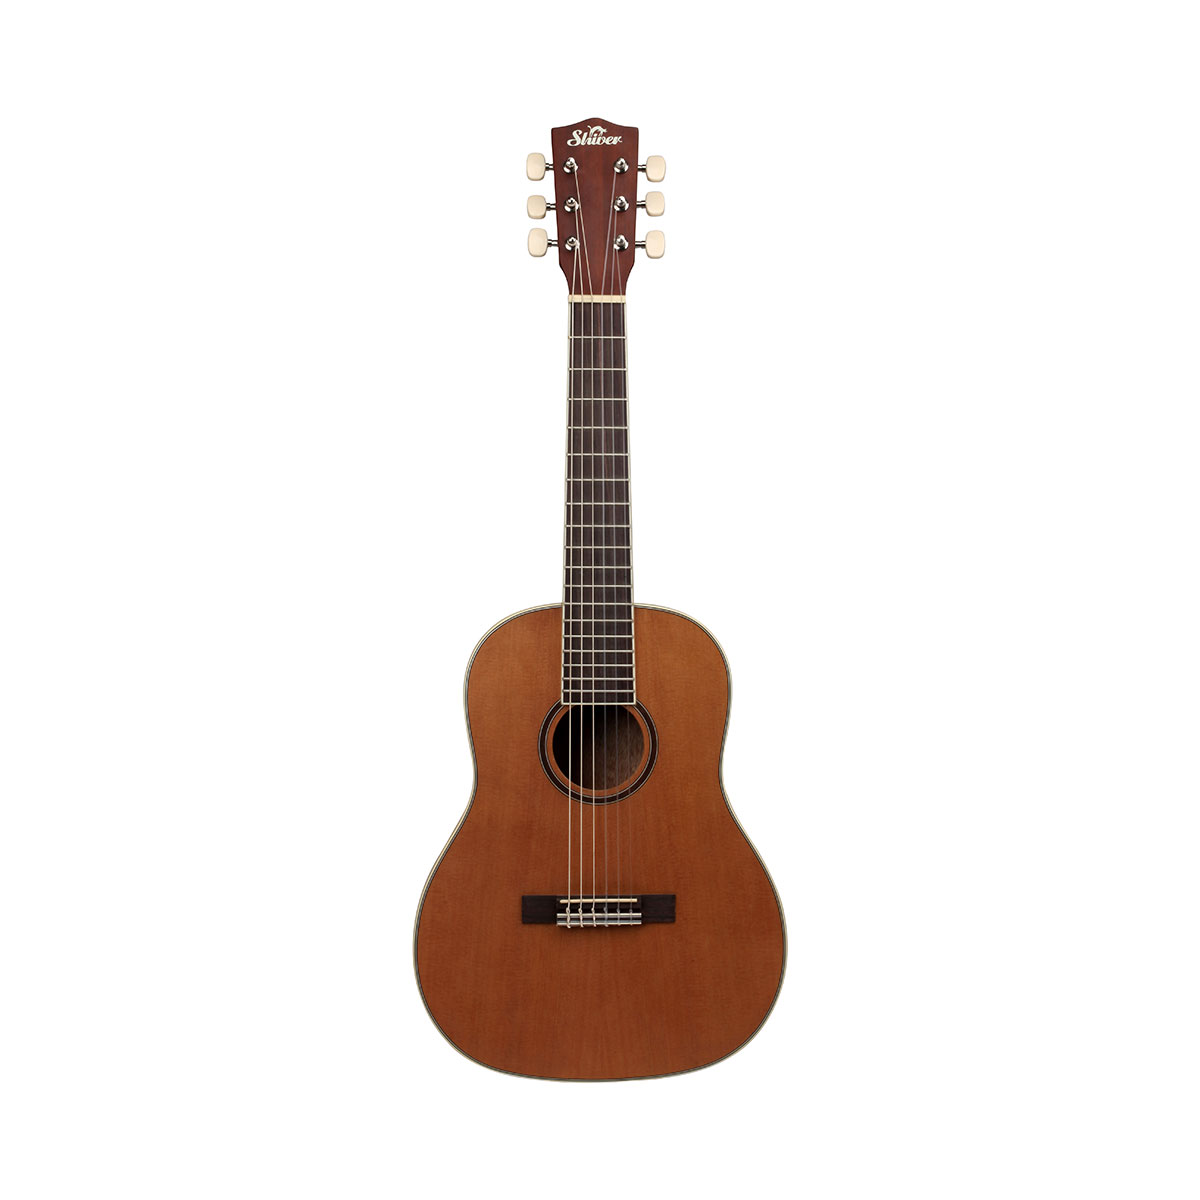 Shiver - Guitario GLS-51 - Naturel